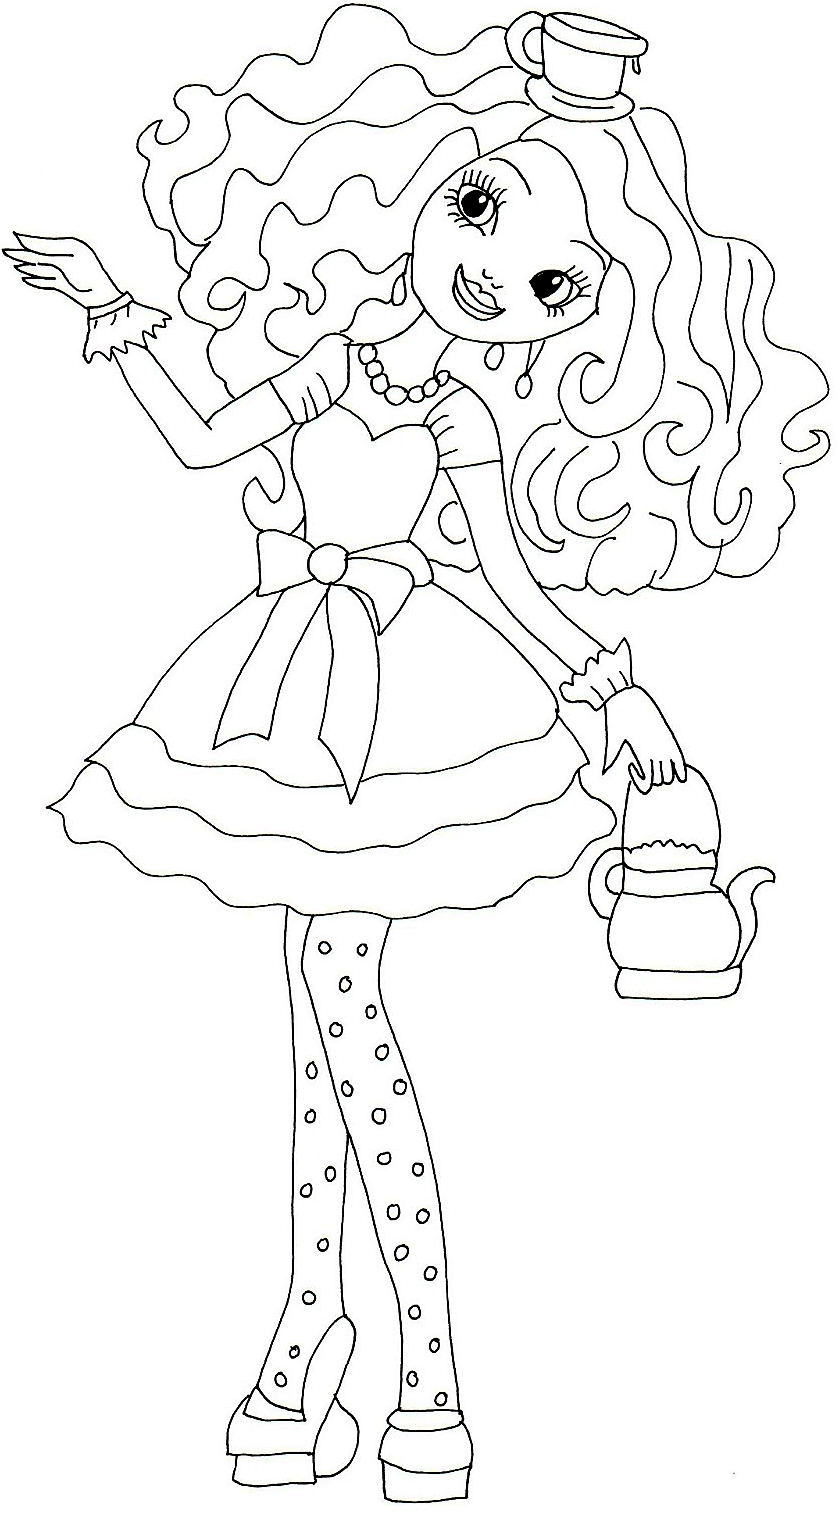 Free printable ever after high coloring pages madeline for Madeline coloring pages printable